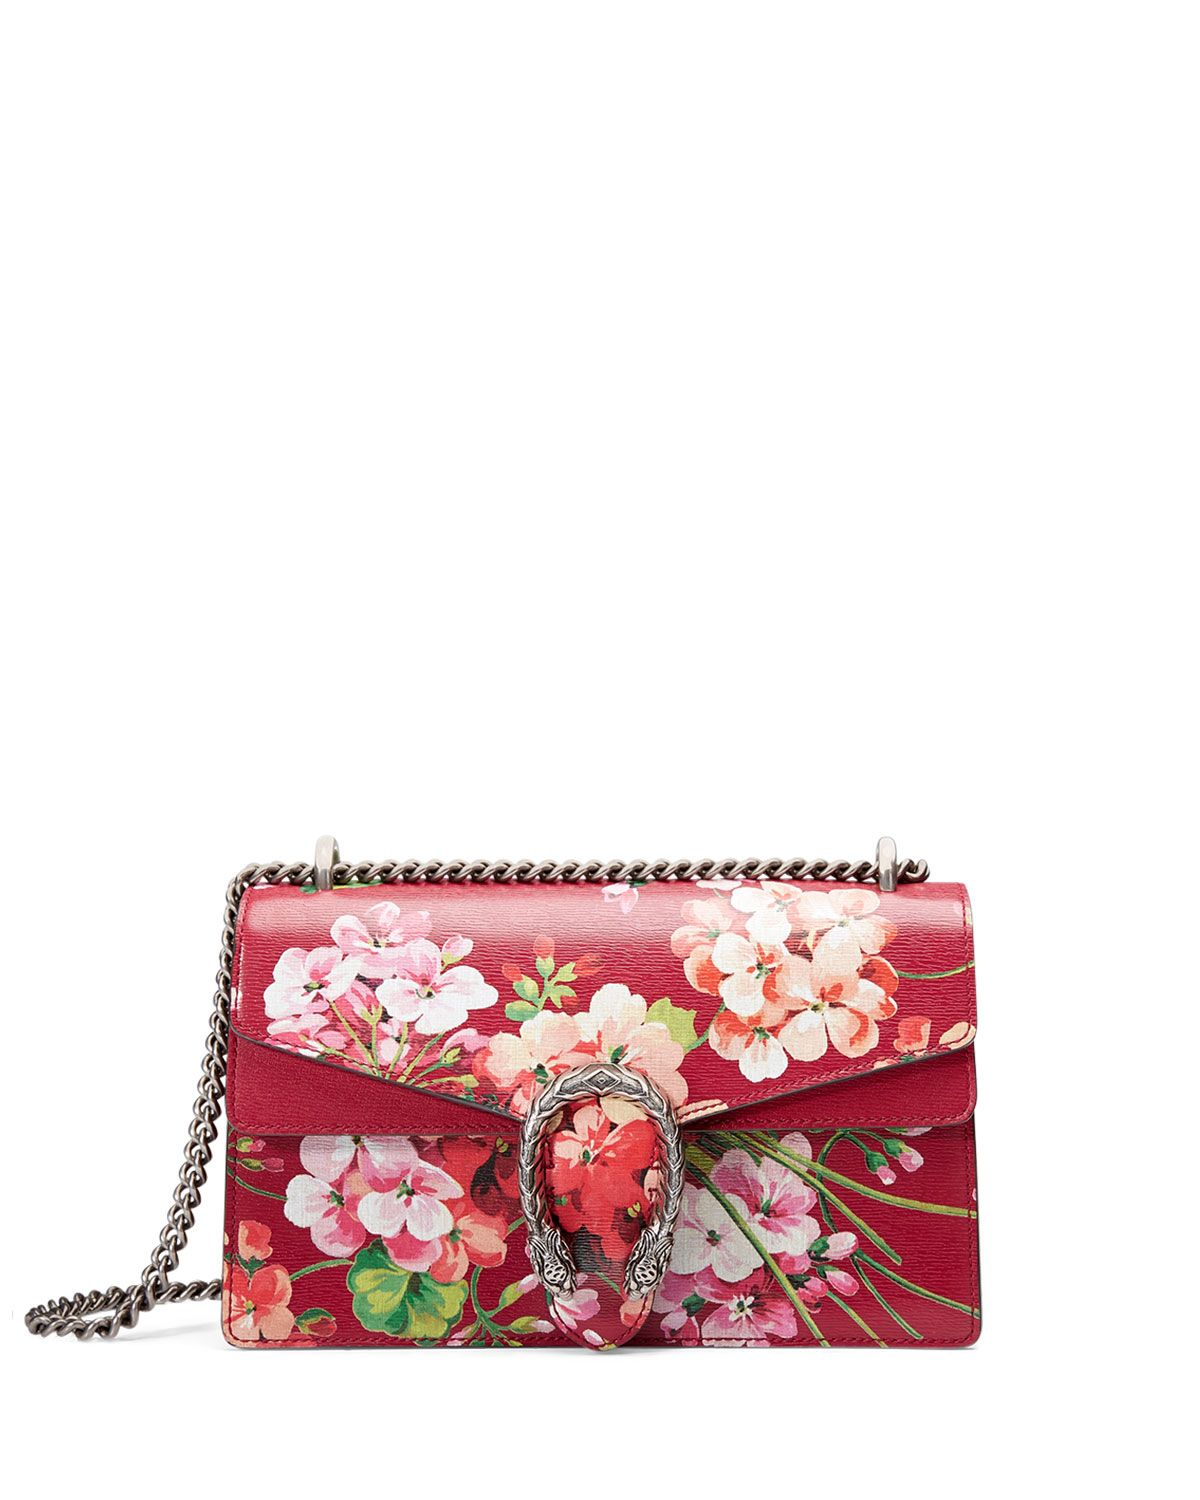 a93af0edfb6 Dionysus Blooms Small Shoulder Bag Red